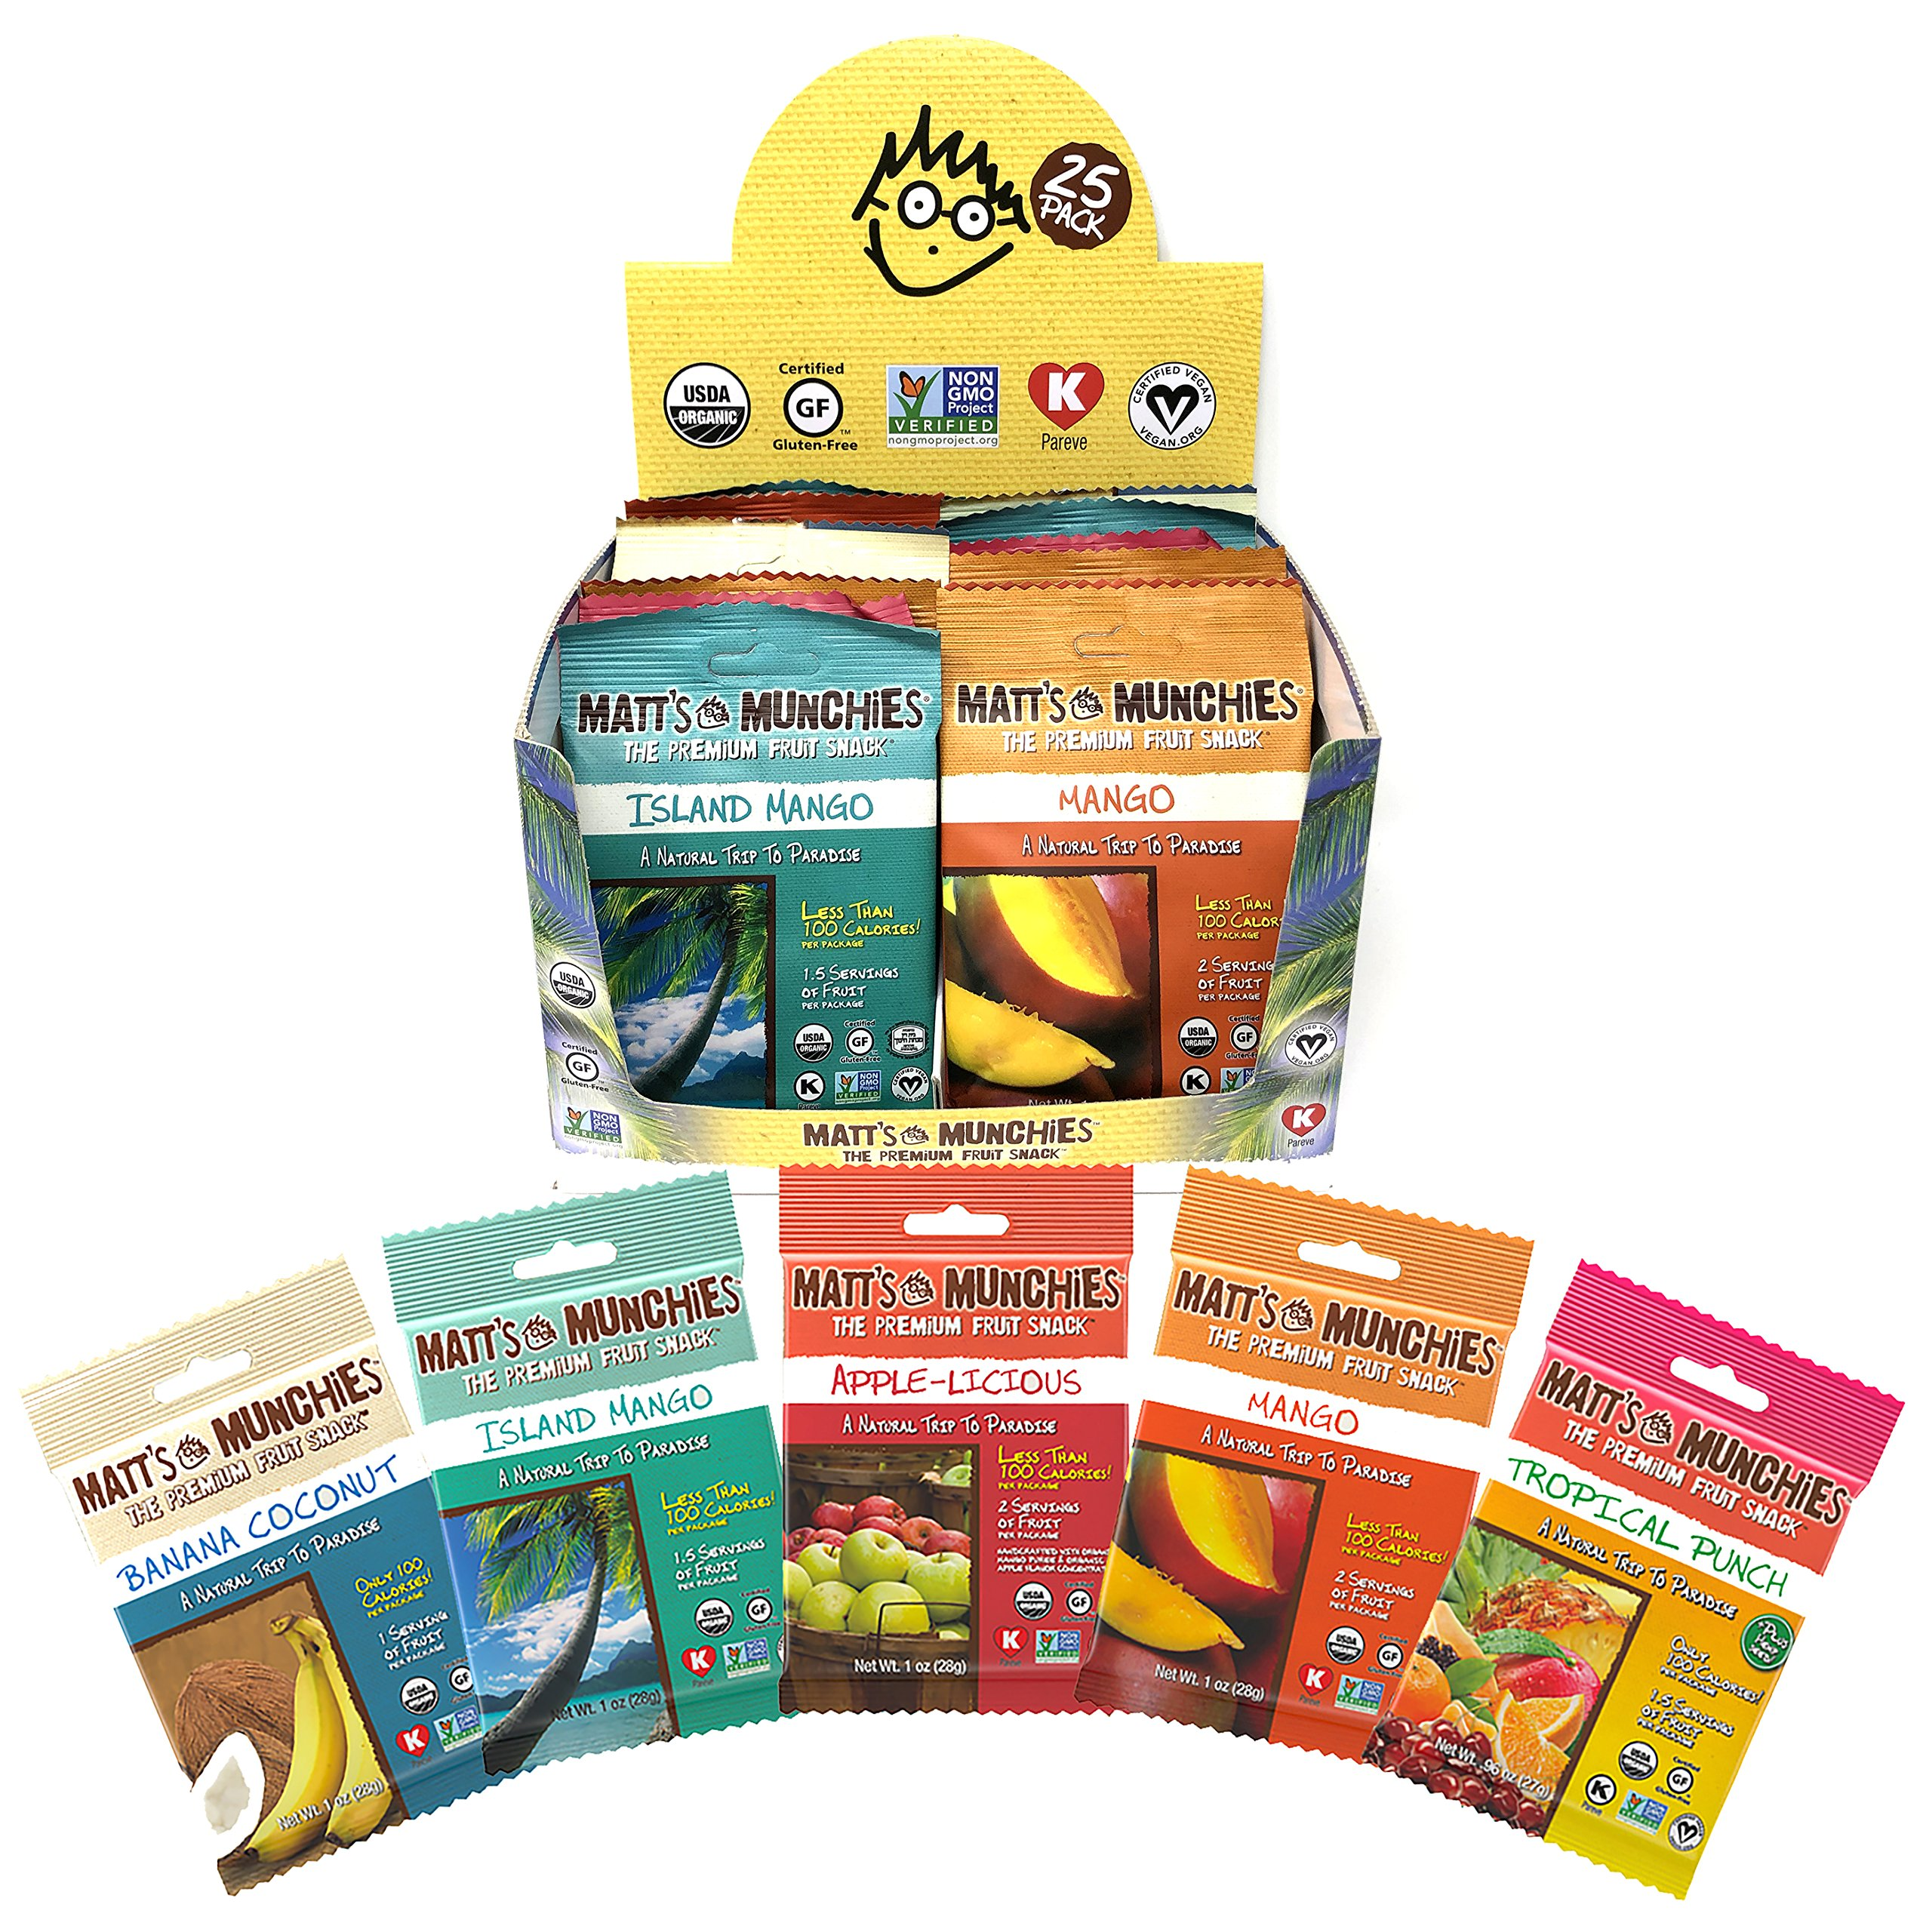 Matt's Munchies Tropical Assortment Organic Non-GMO Peelable Fruit Snacks 25 Count Variety Pack Caddy – Mango, Island Mango, Tropical Punch, Banana Coconut & Apple